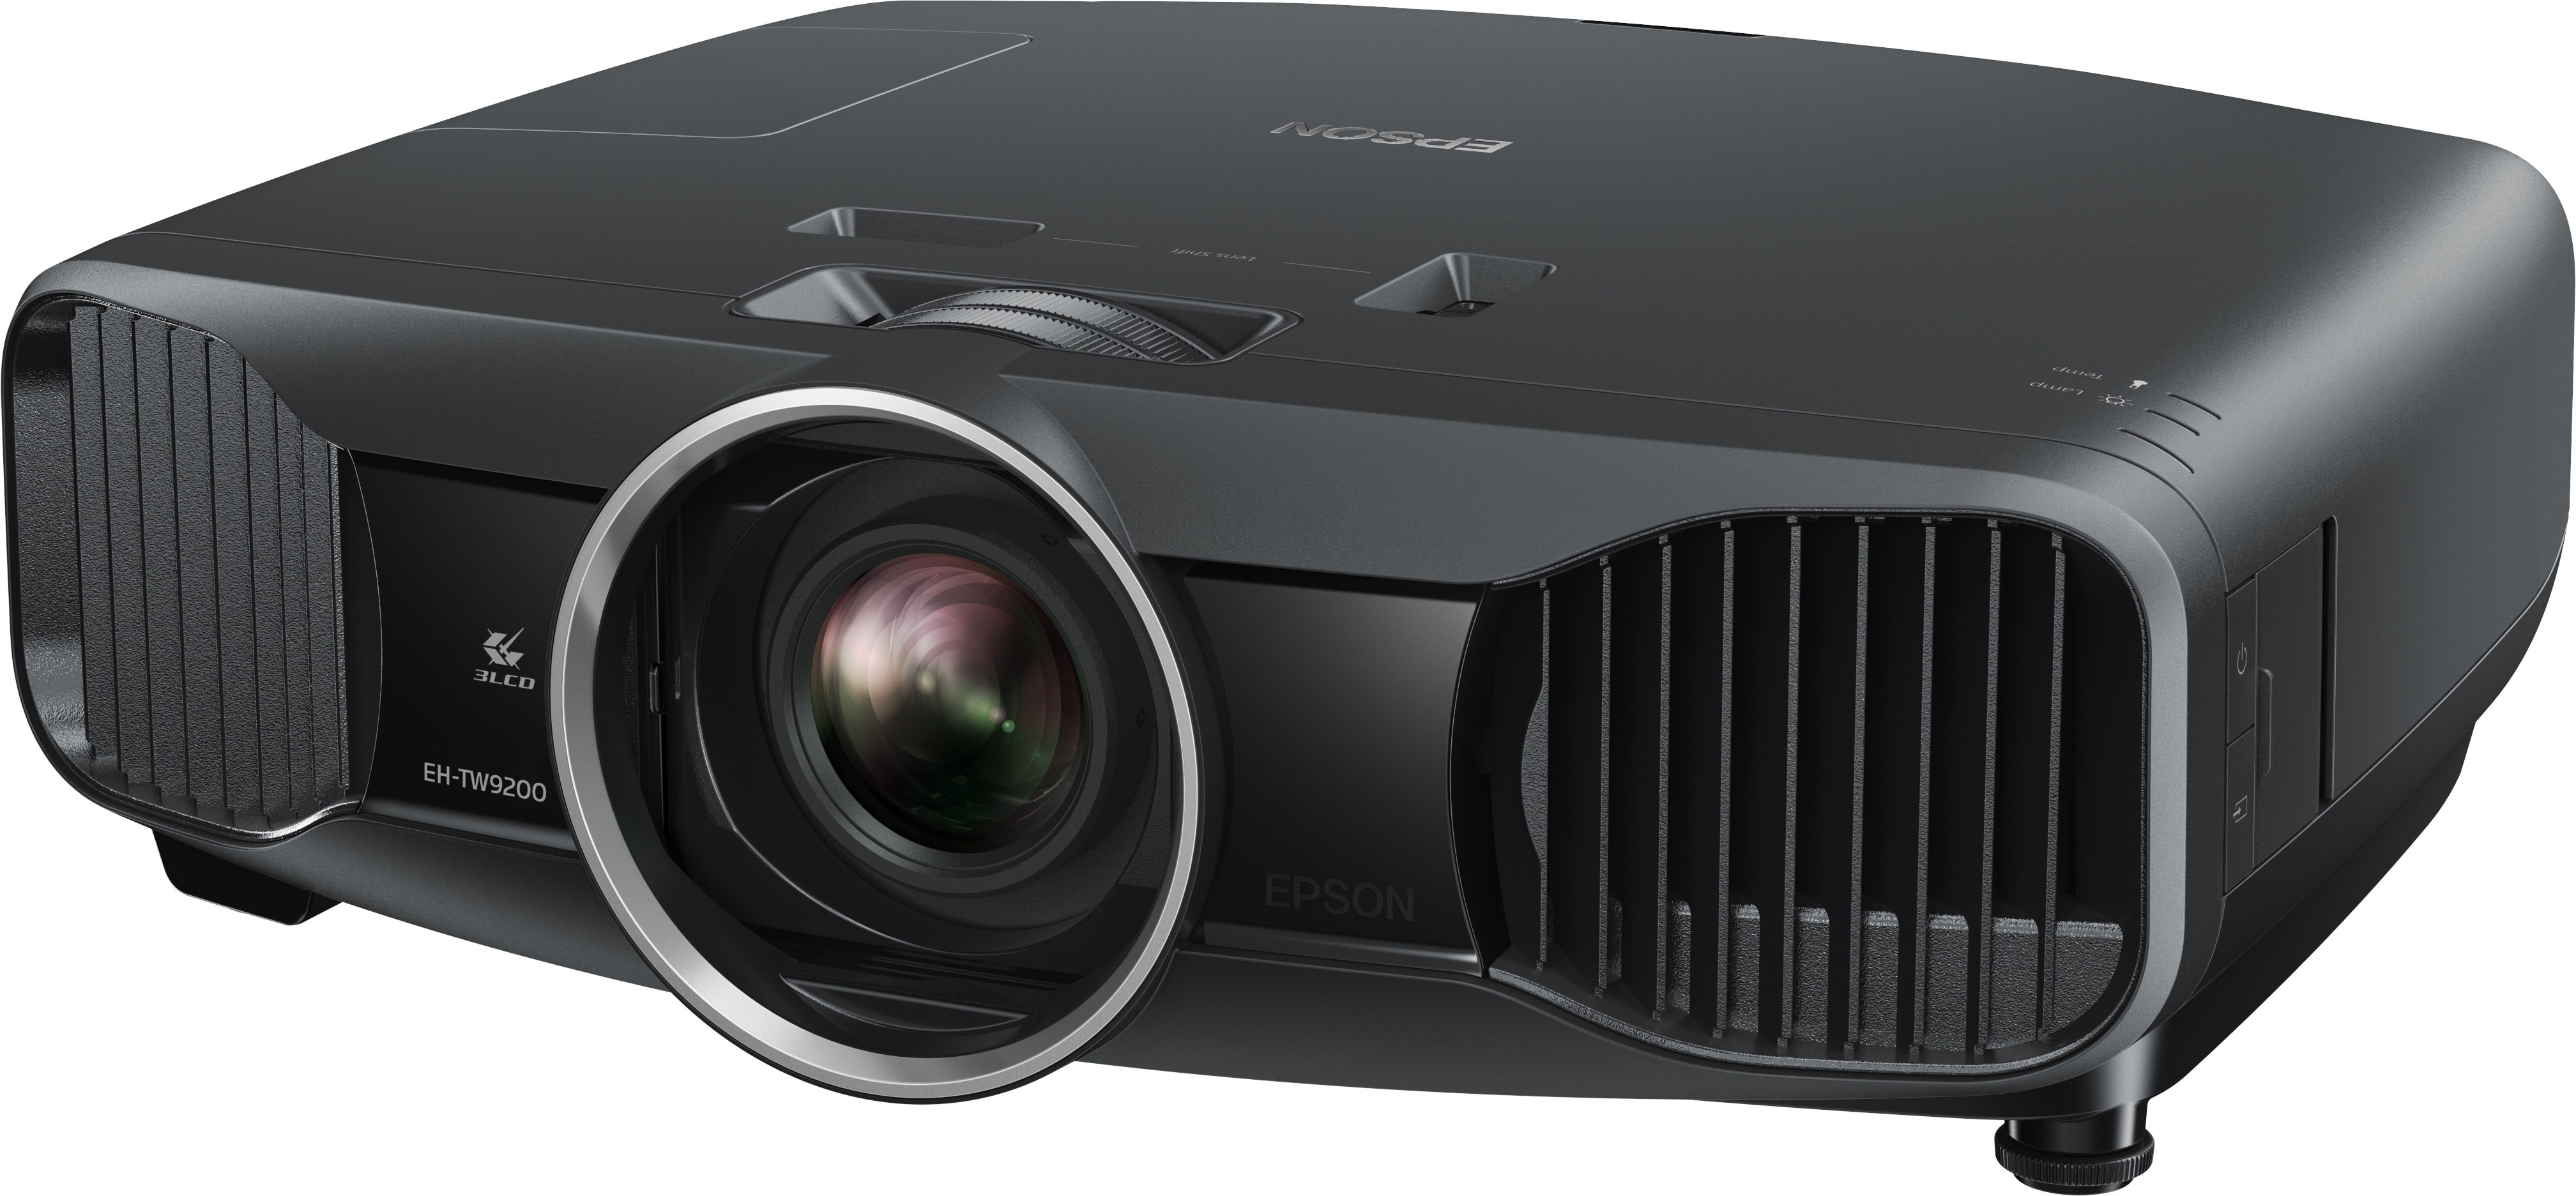 Epson 2400 lm LCD Corded Portable Projector(White)